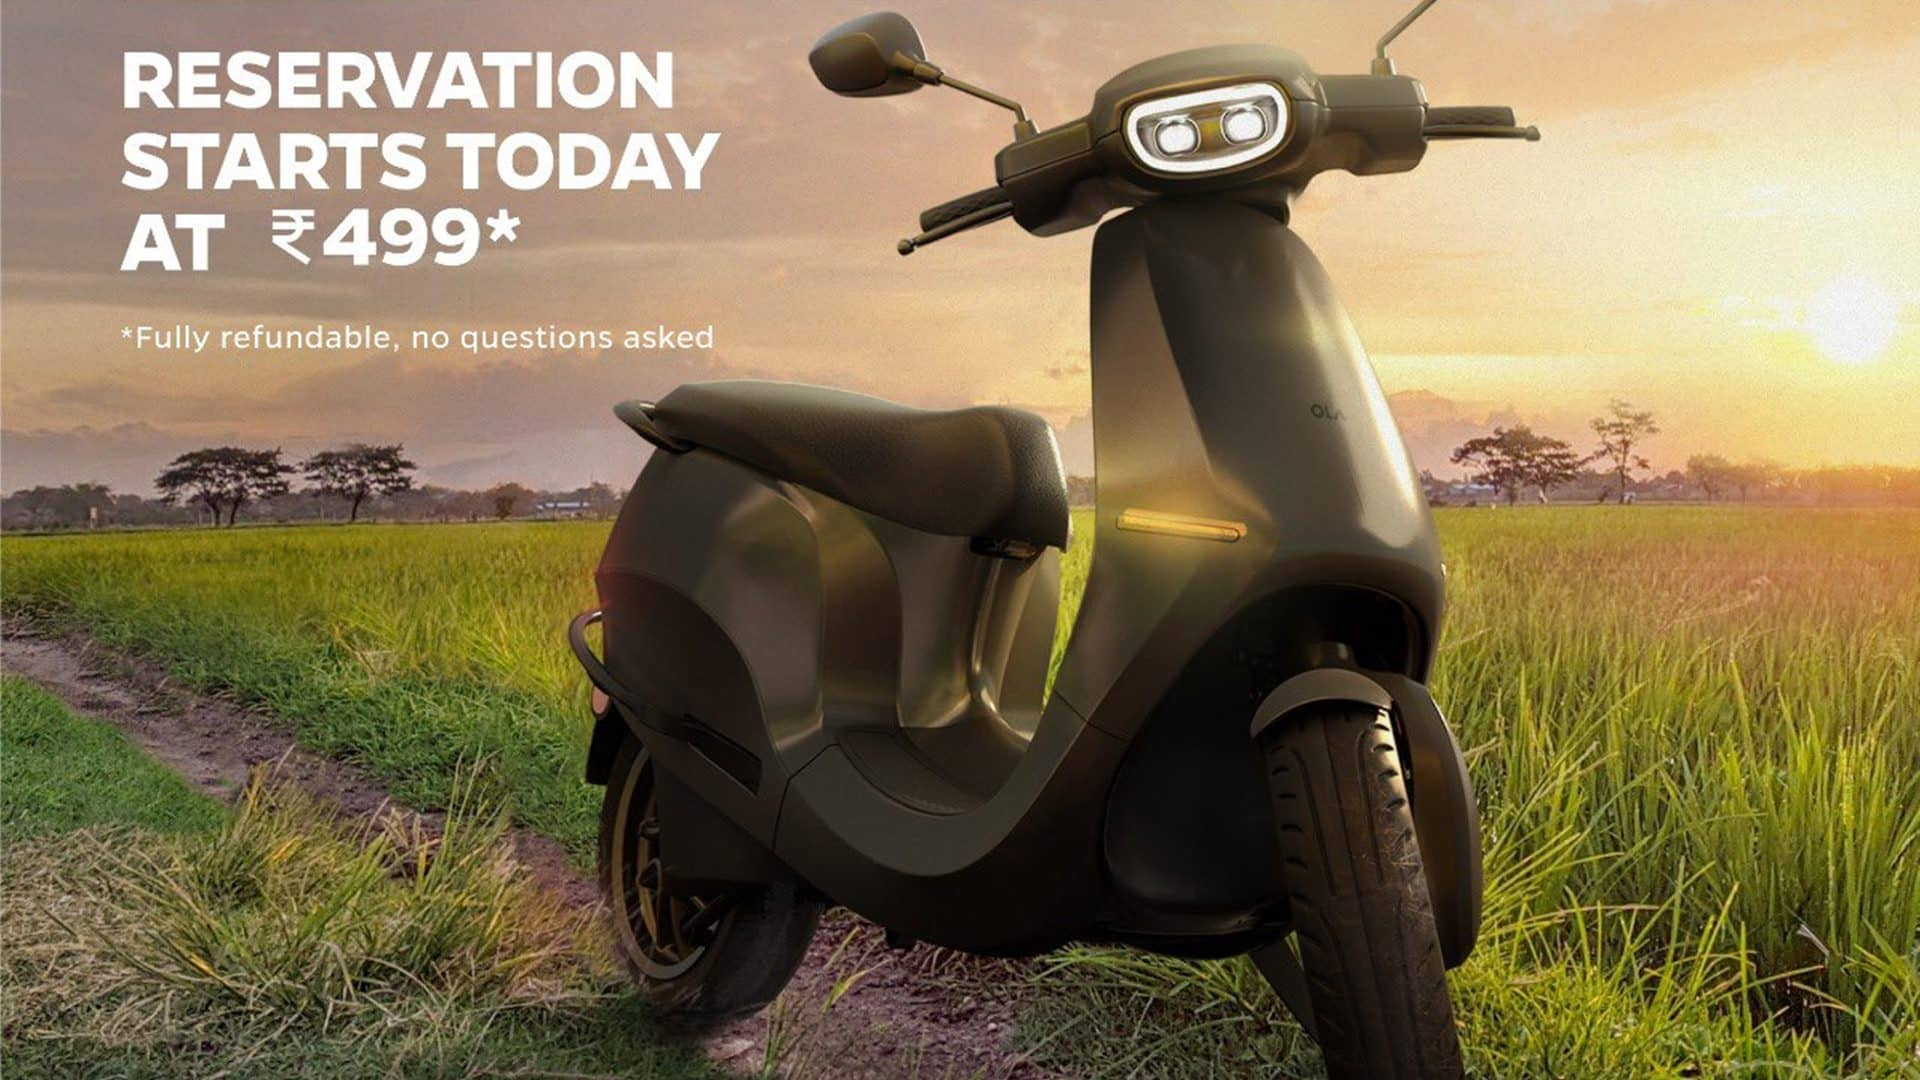 Bookings for Ola electric Scooter begin at Rs 499: Here's what we know so far